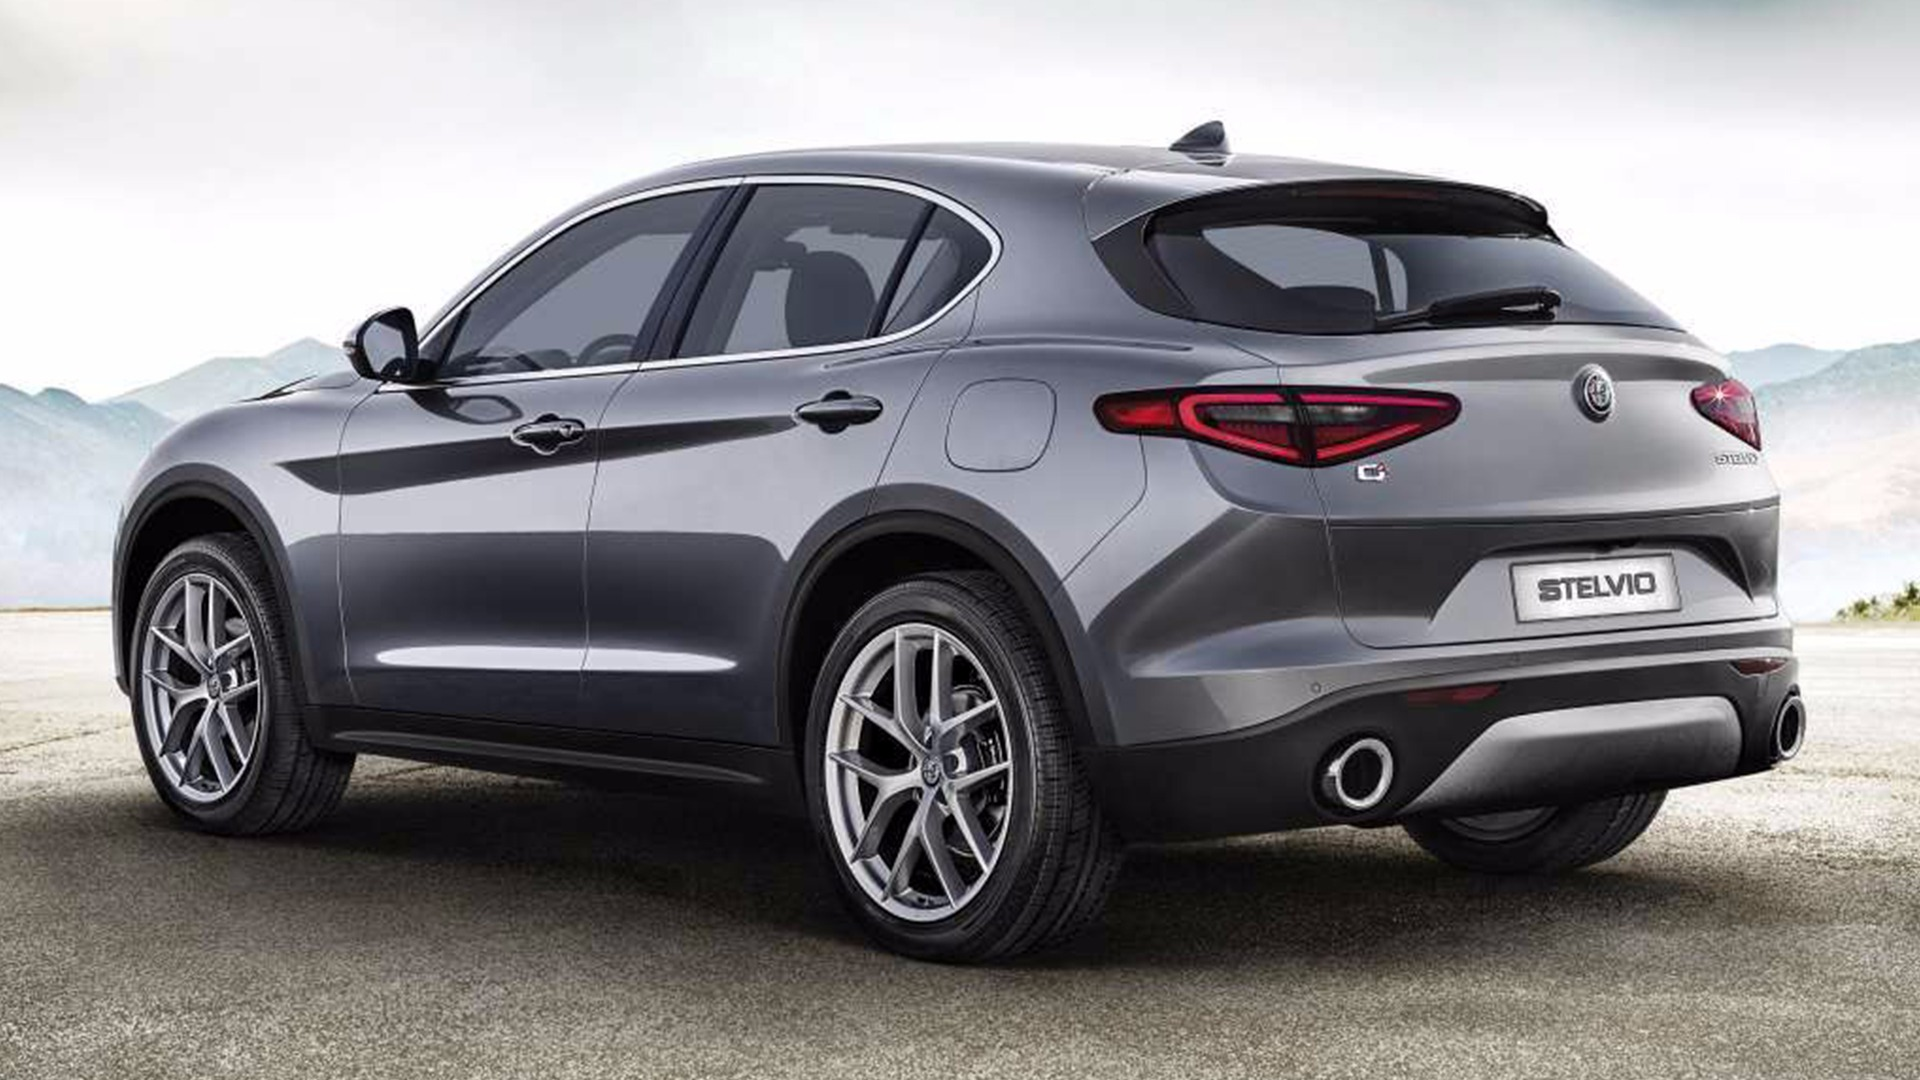 2018 alfa romeo stelvio stock # a181003 for sale near san